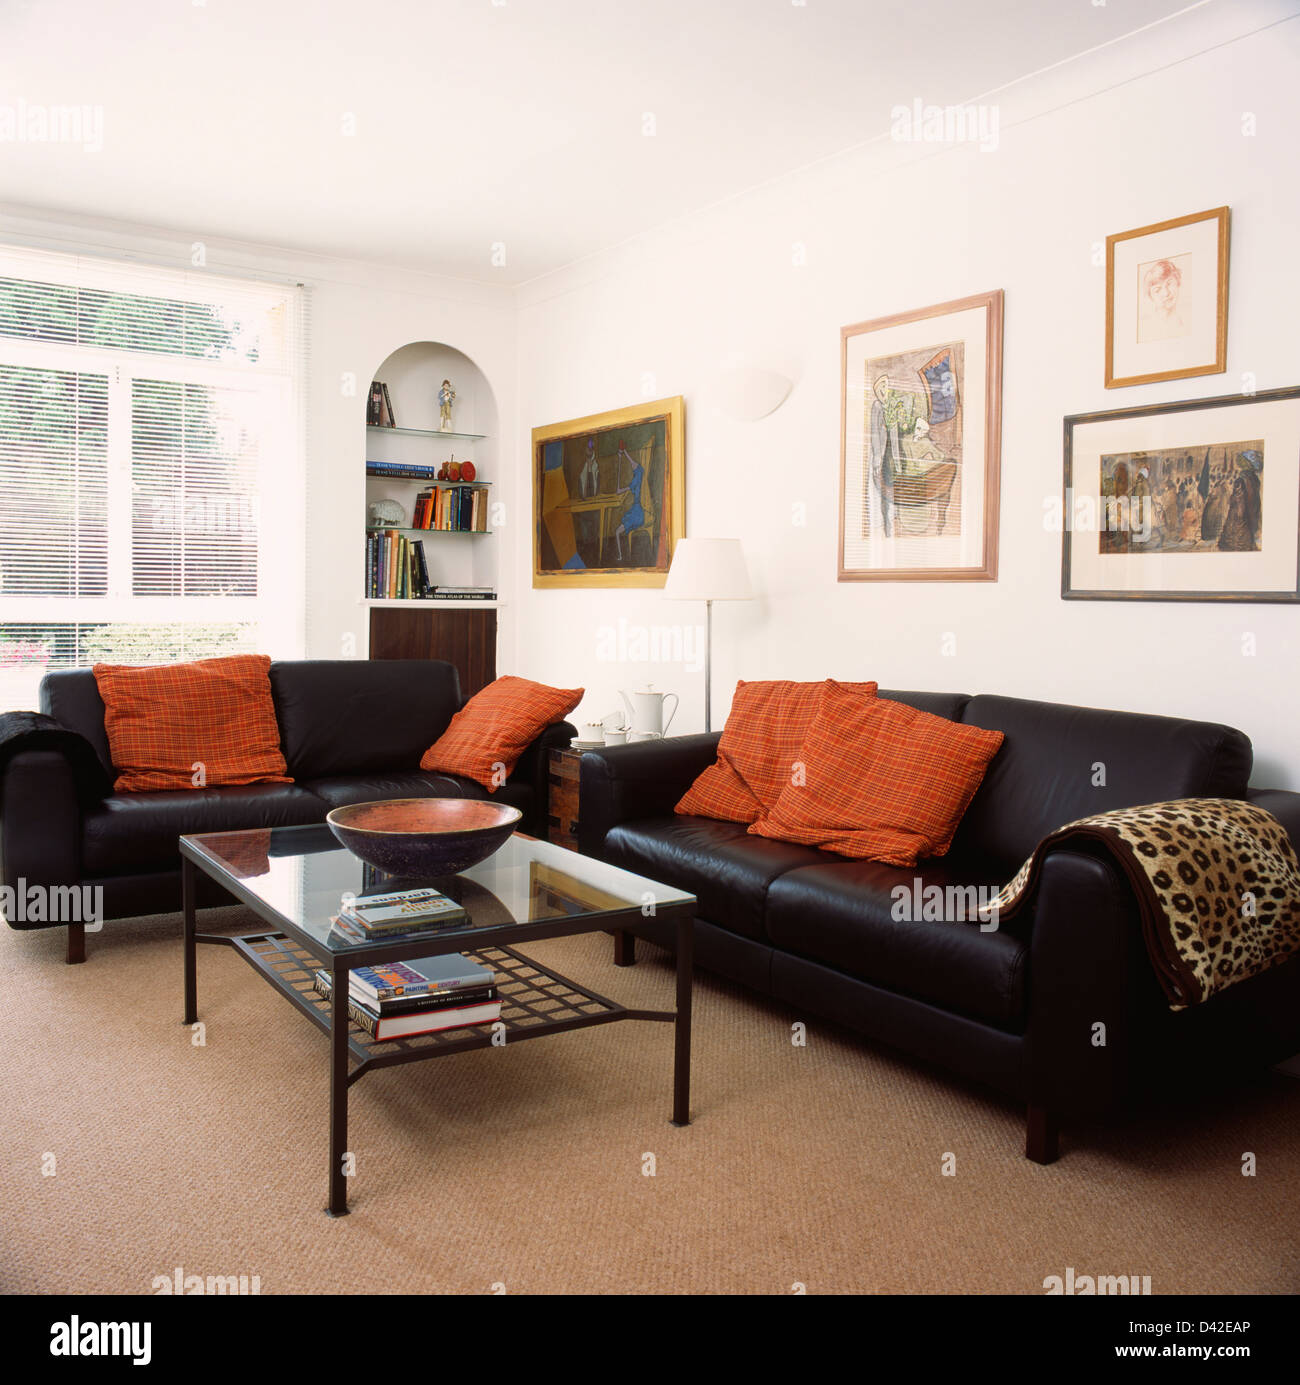 orange living room furniture. Orange Cushions On Black Leather Sofas In Living Room With Beige Carpet And Glass-topped Coffee Table Furniture I